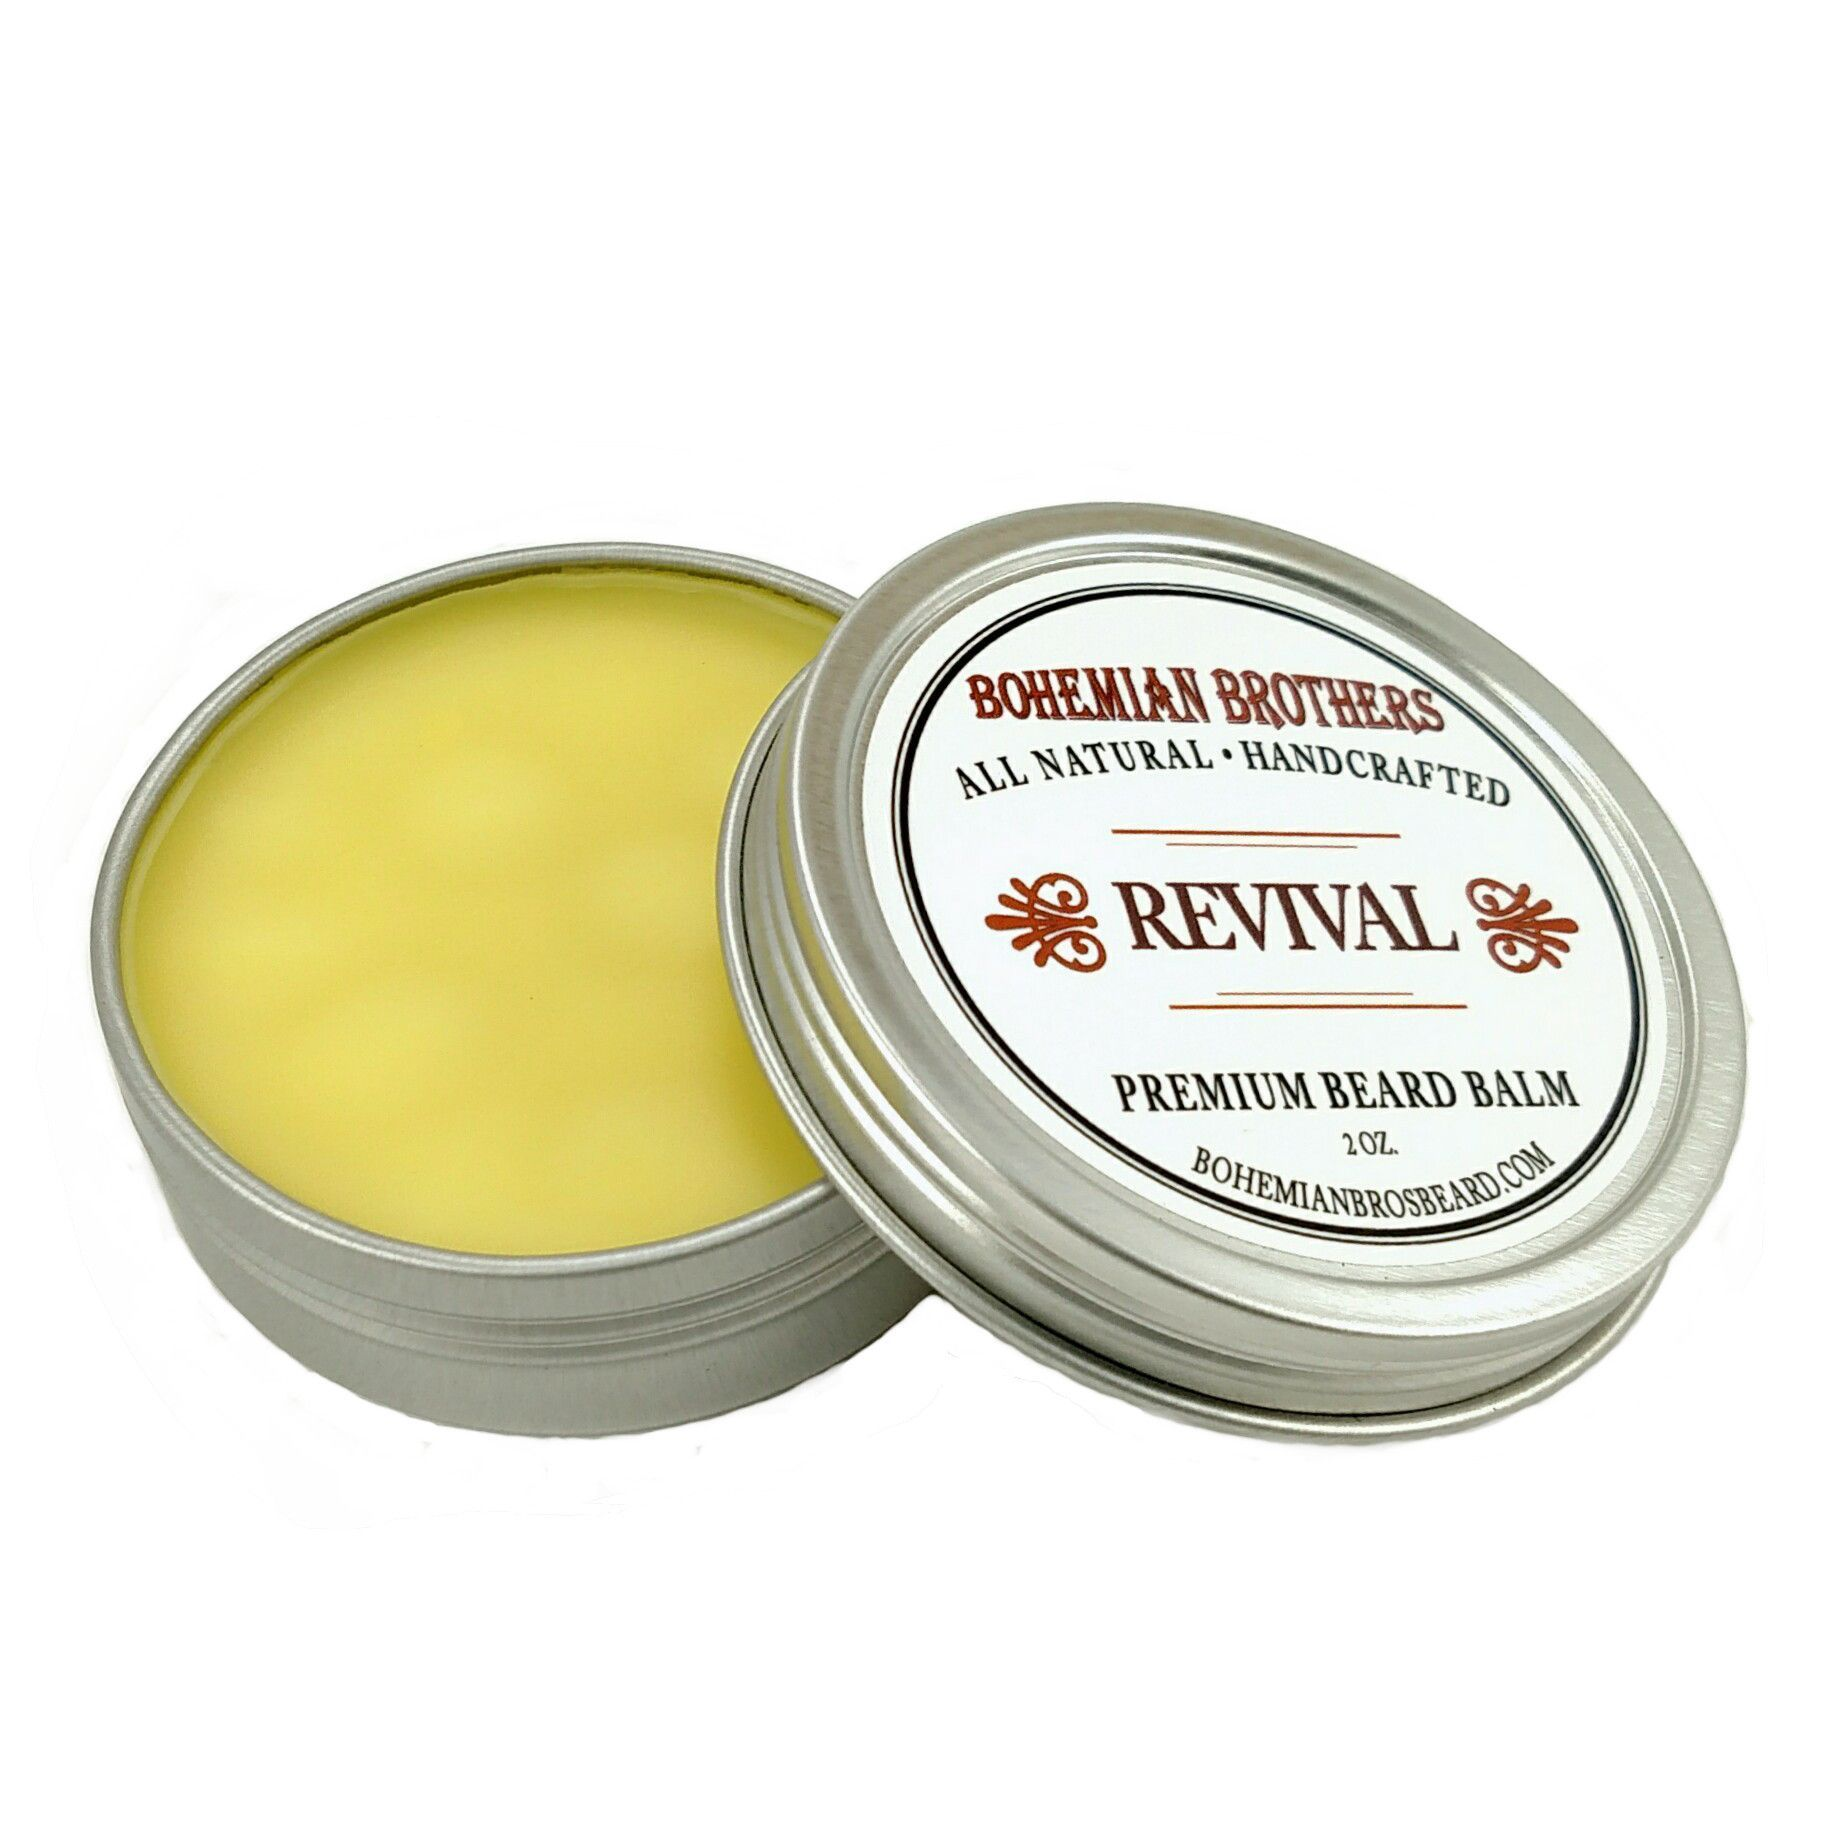 RevivalBeard Balm is the perfect compliment to your daily grooming routine.